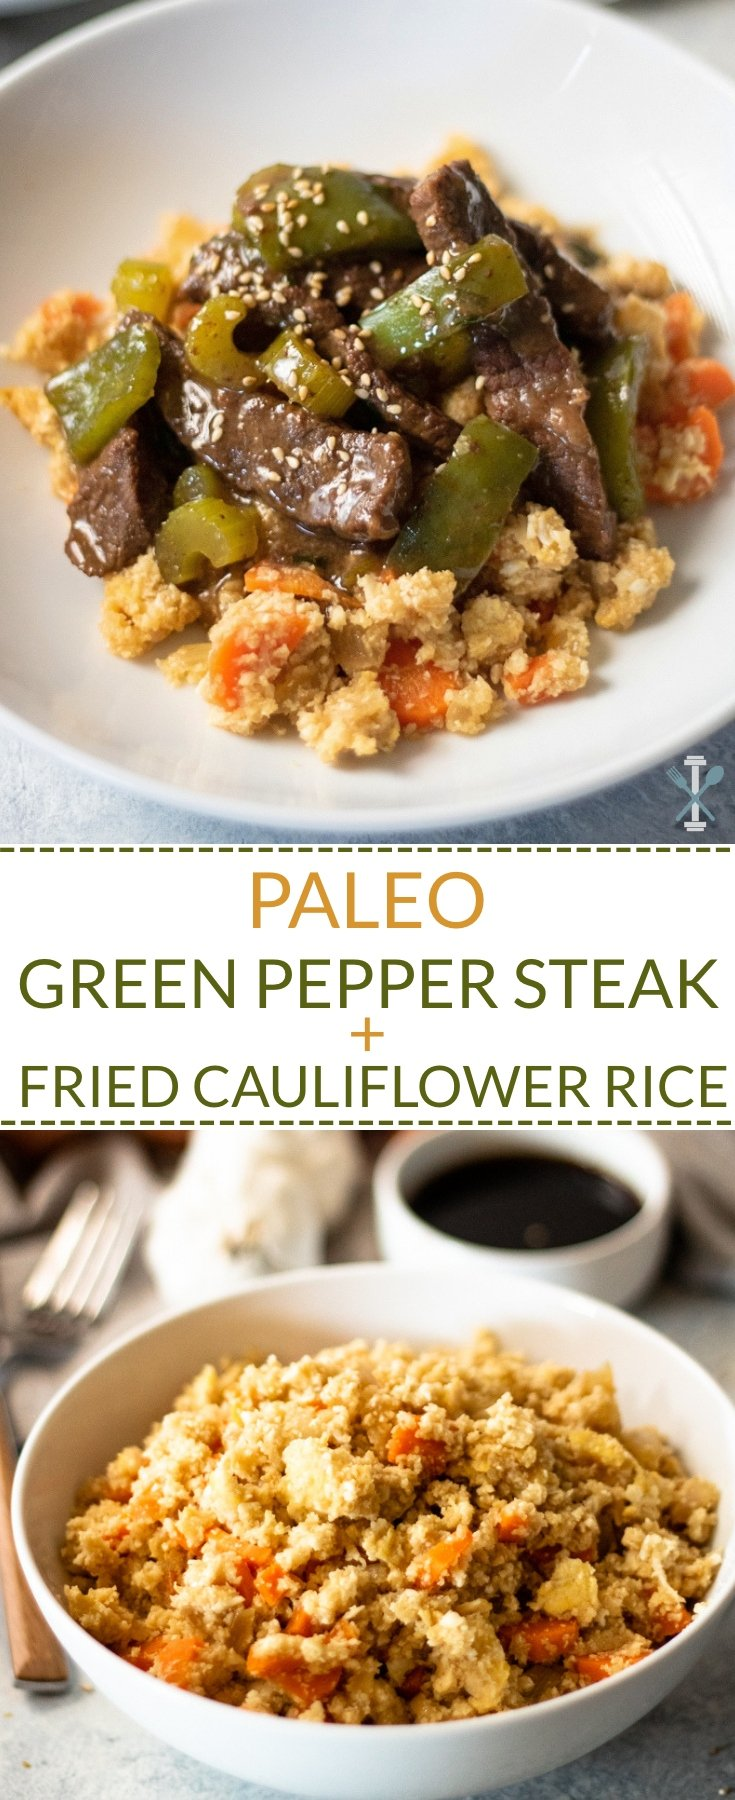 This paleo + Whole30 compliant dinner is full of amazing Asian-inspired flavor. Grain free, low carb, dairy free